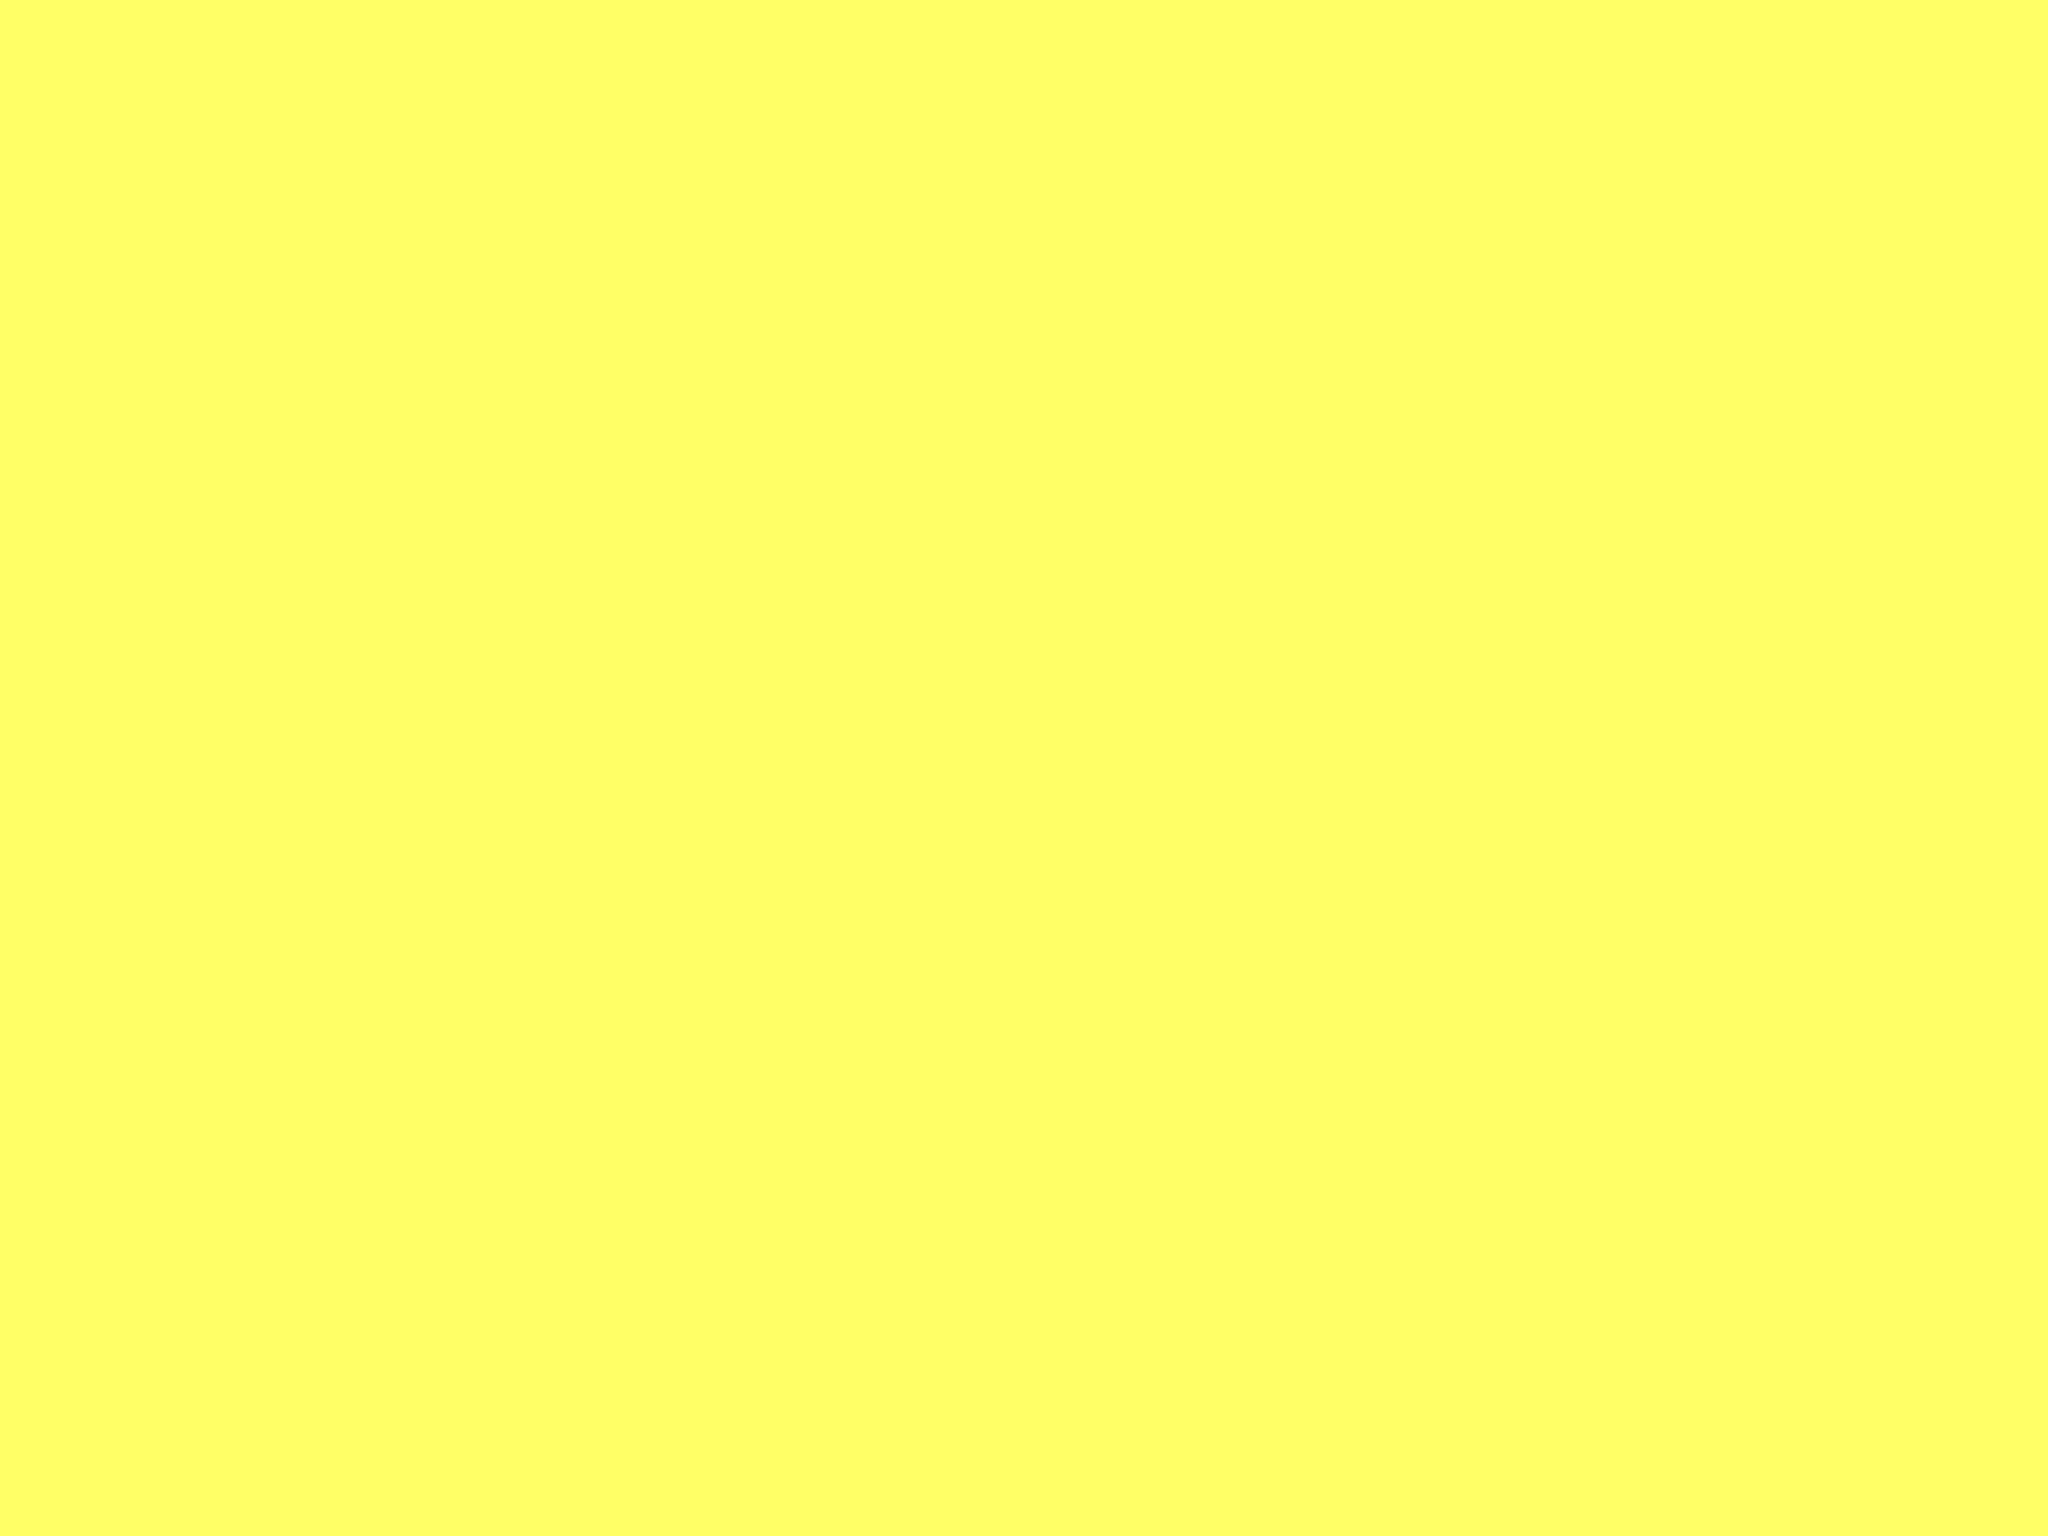 2048x1536 Unmellow Yellow Solid Color Background